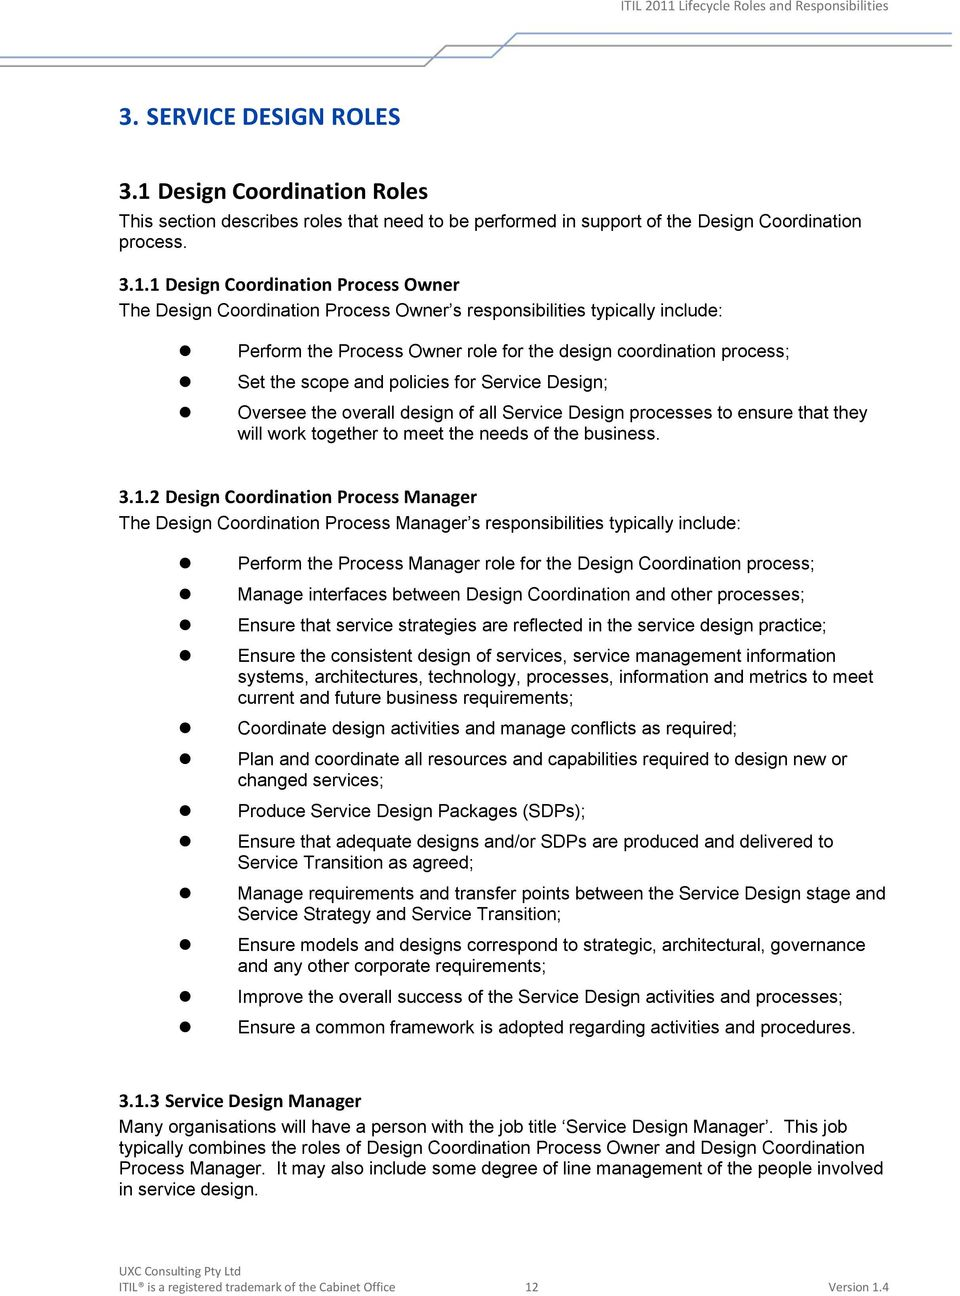 1 Design Coordination Process Owner The Design Coordination Process Owner s responsibilities typically include: Perform the Process Owner role for the design coordination process; Set the scope and